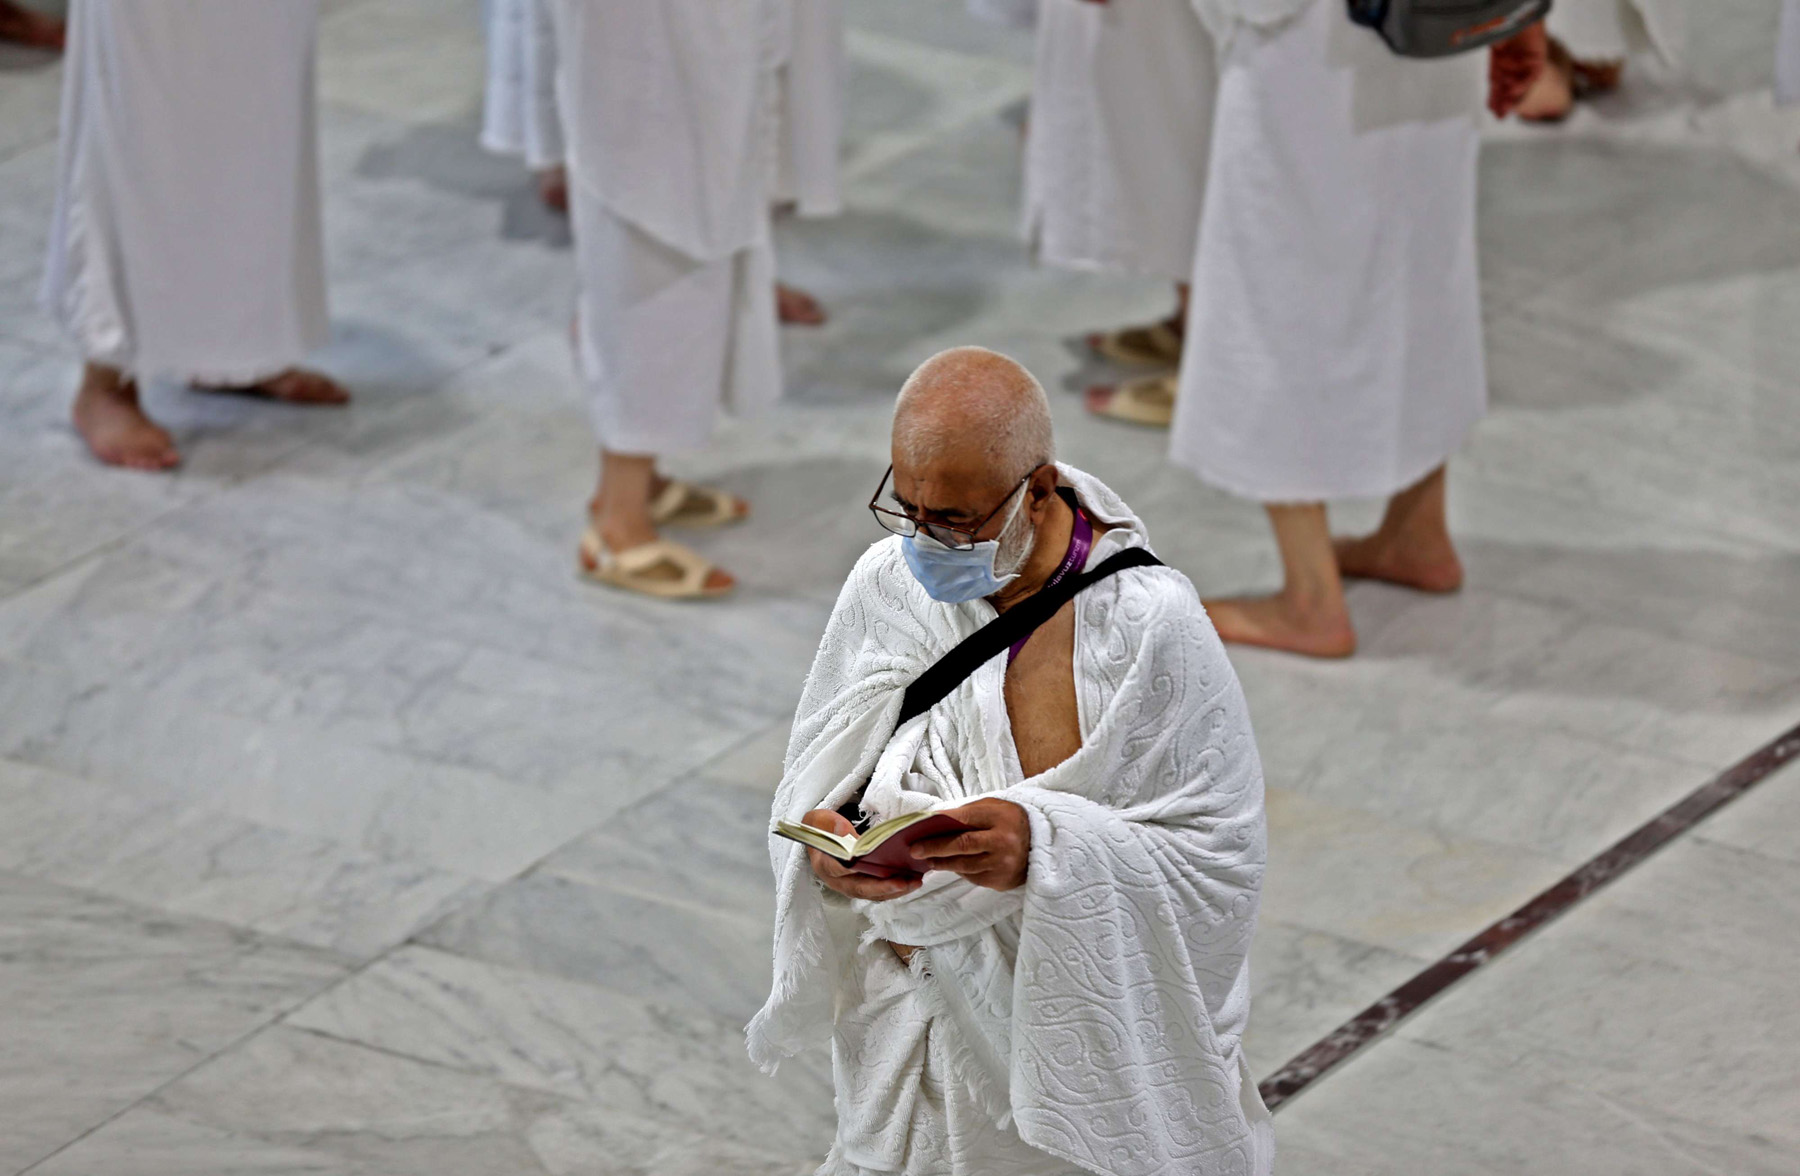 A Muslim pilgrim wears protection mask at the Grand Mosque in Mecca, February 27. (AFP)